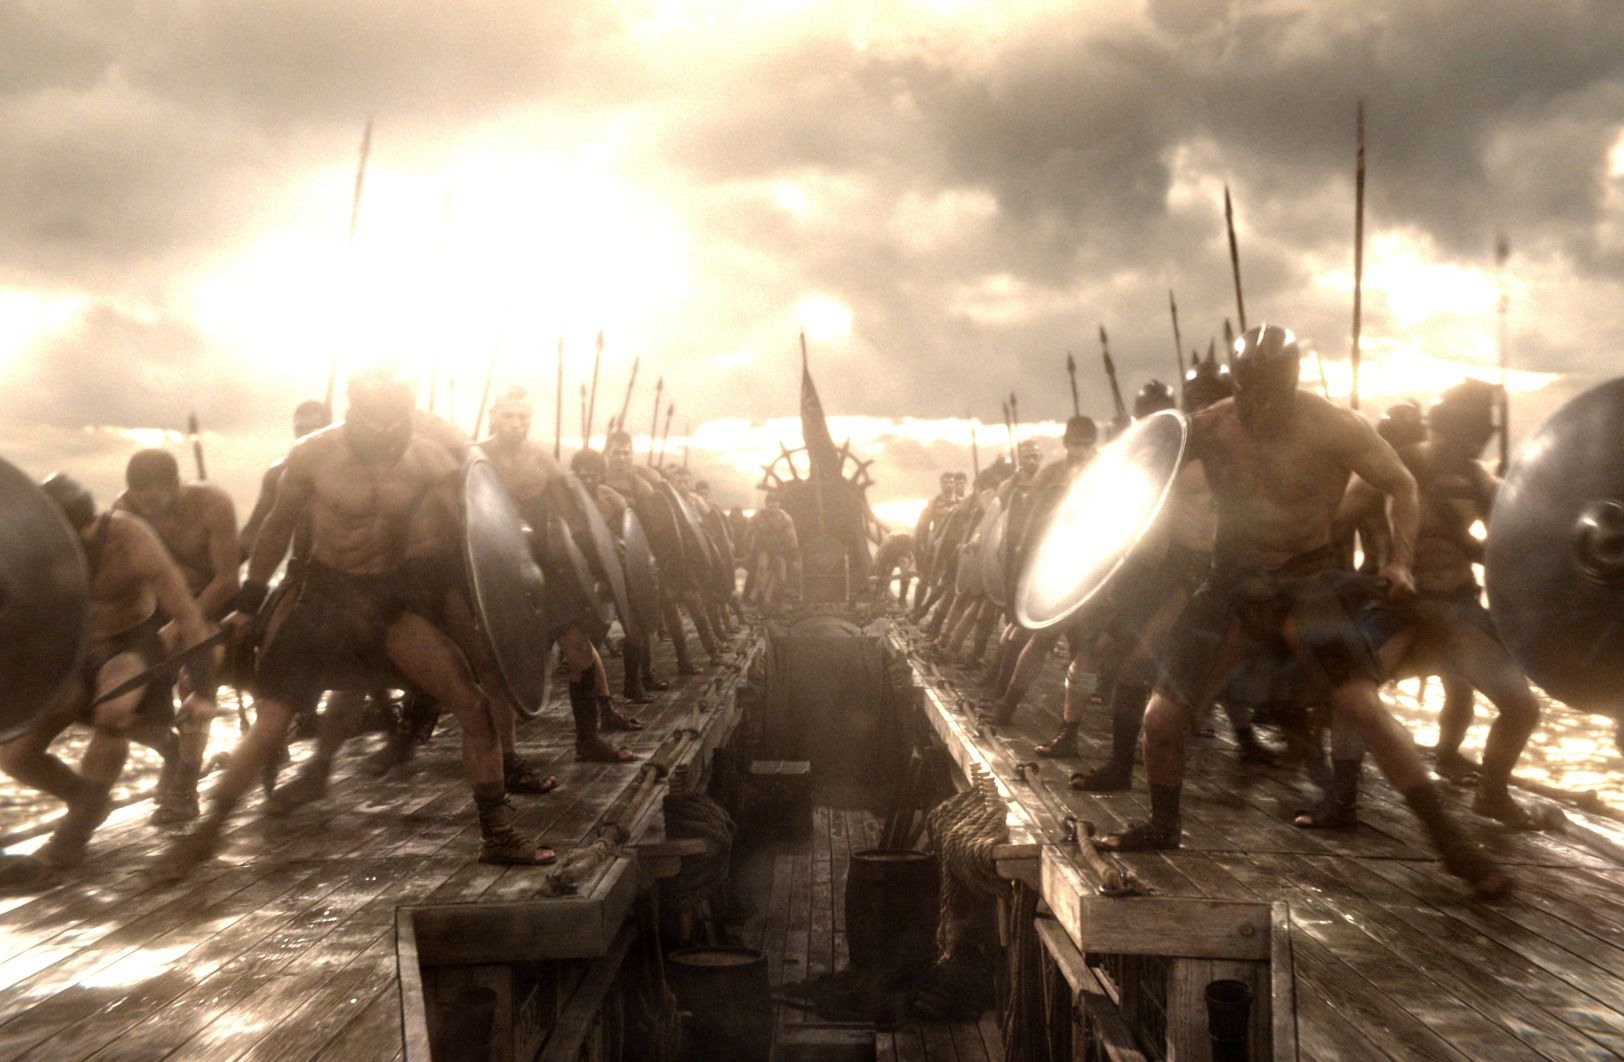 On boat ready to fight, 300: Rise of an Empire